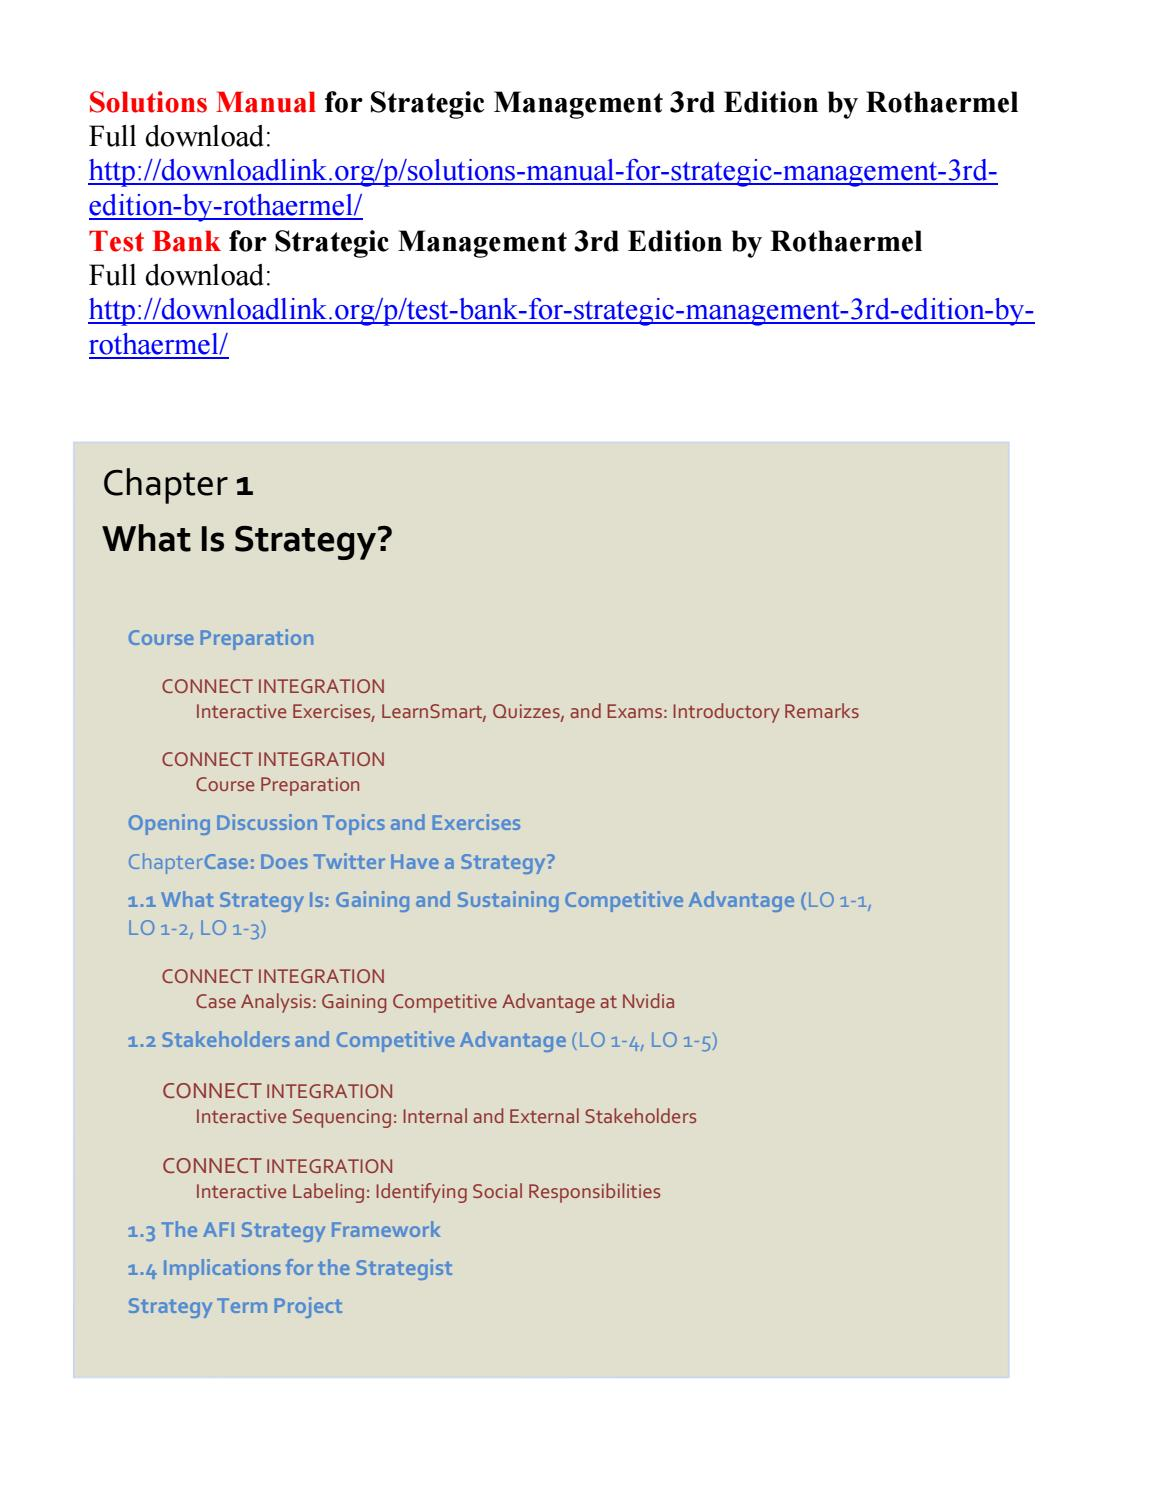 Solutions manual for strategic management 3rd edition by rothaermel by  Harvey111 - issuu